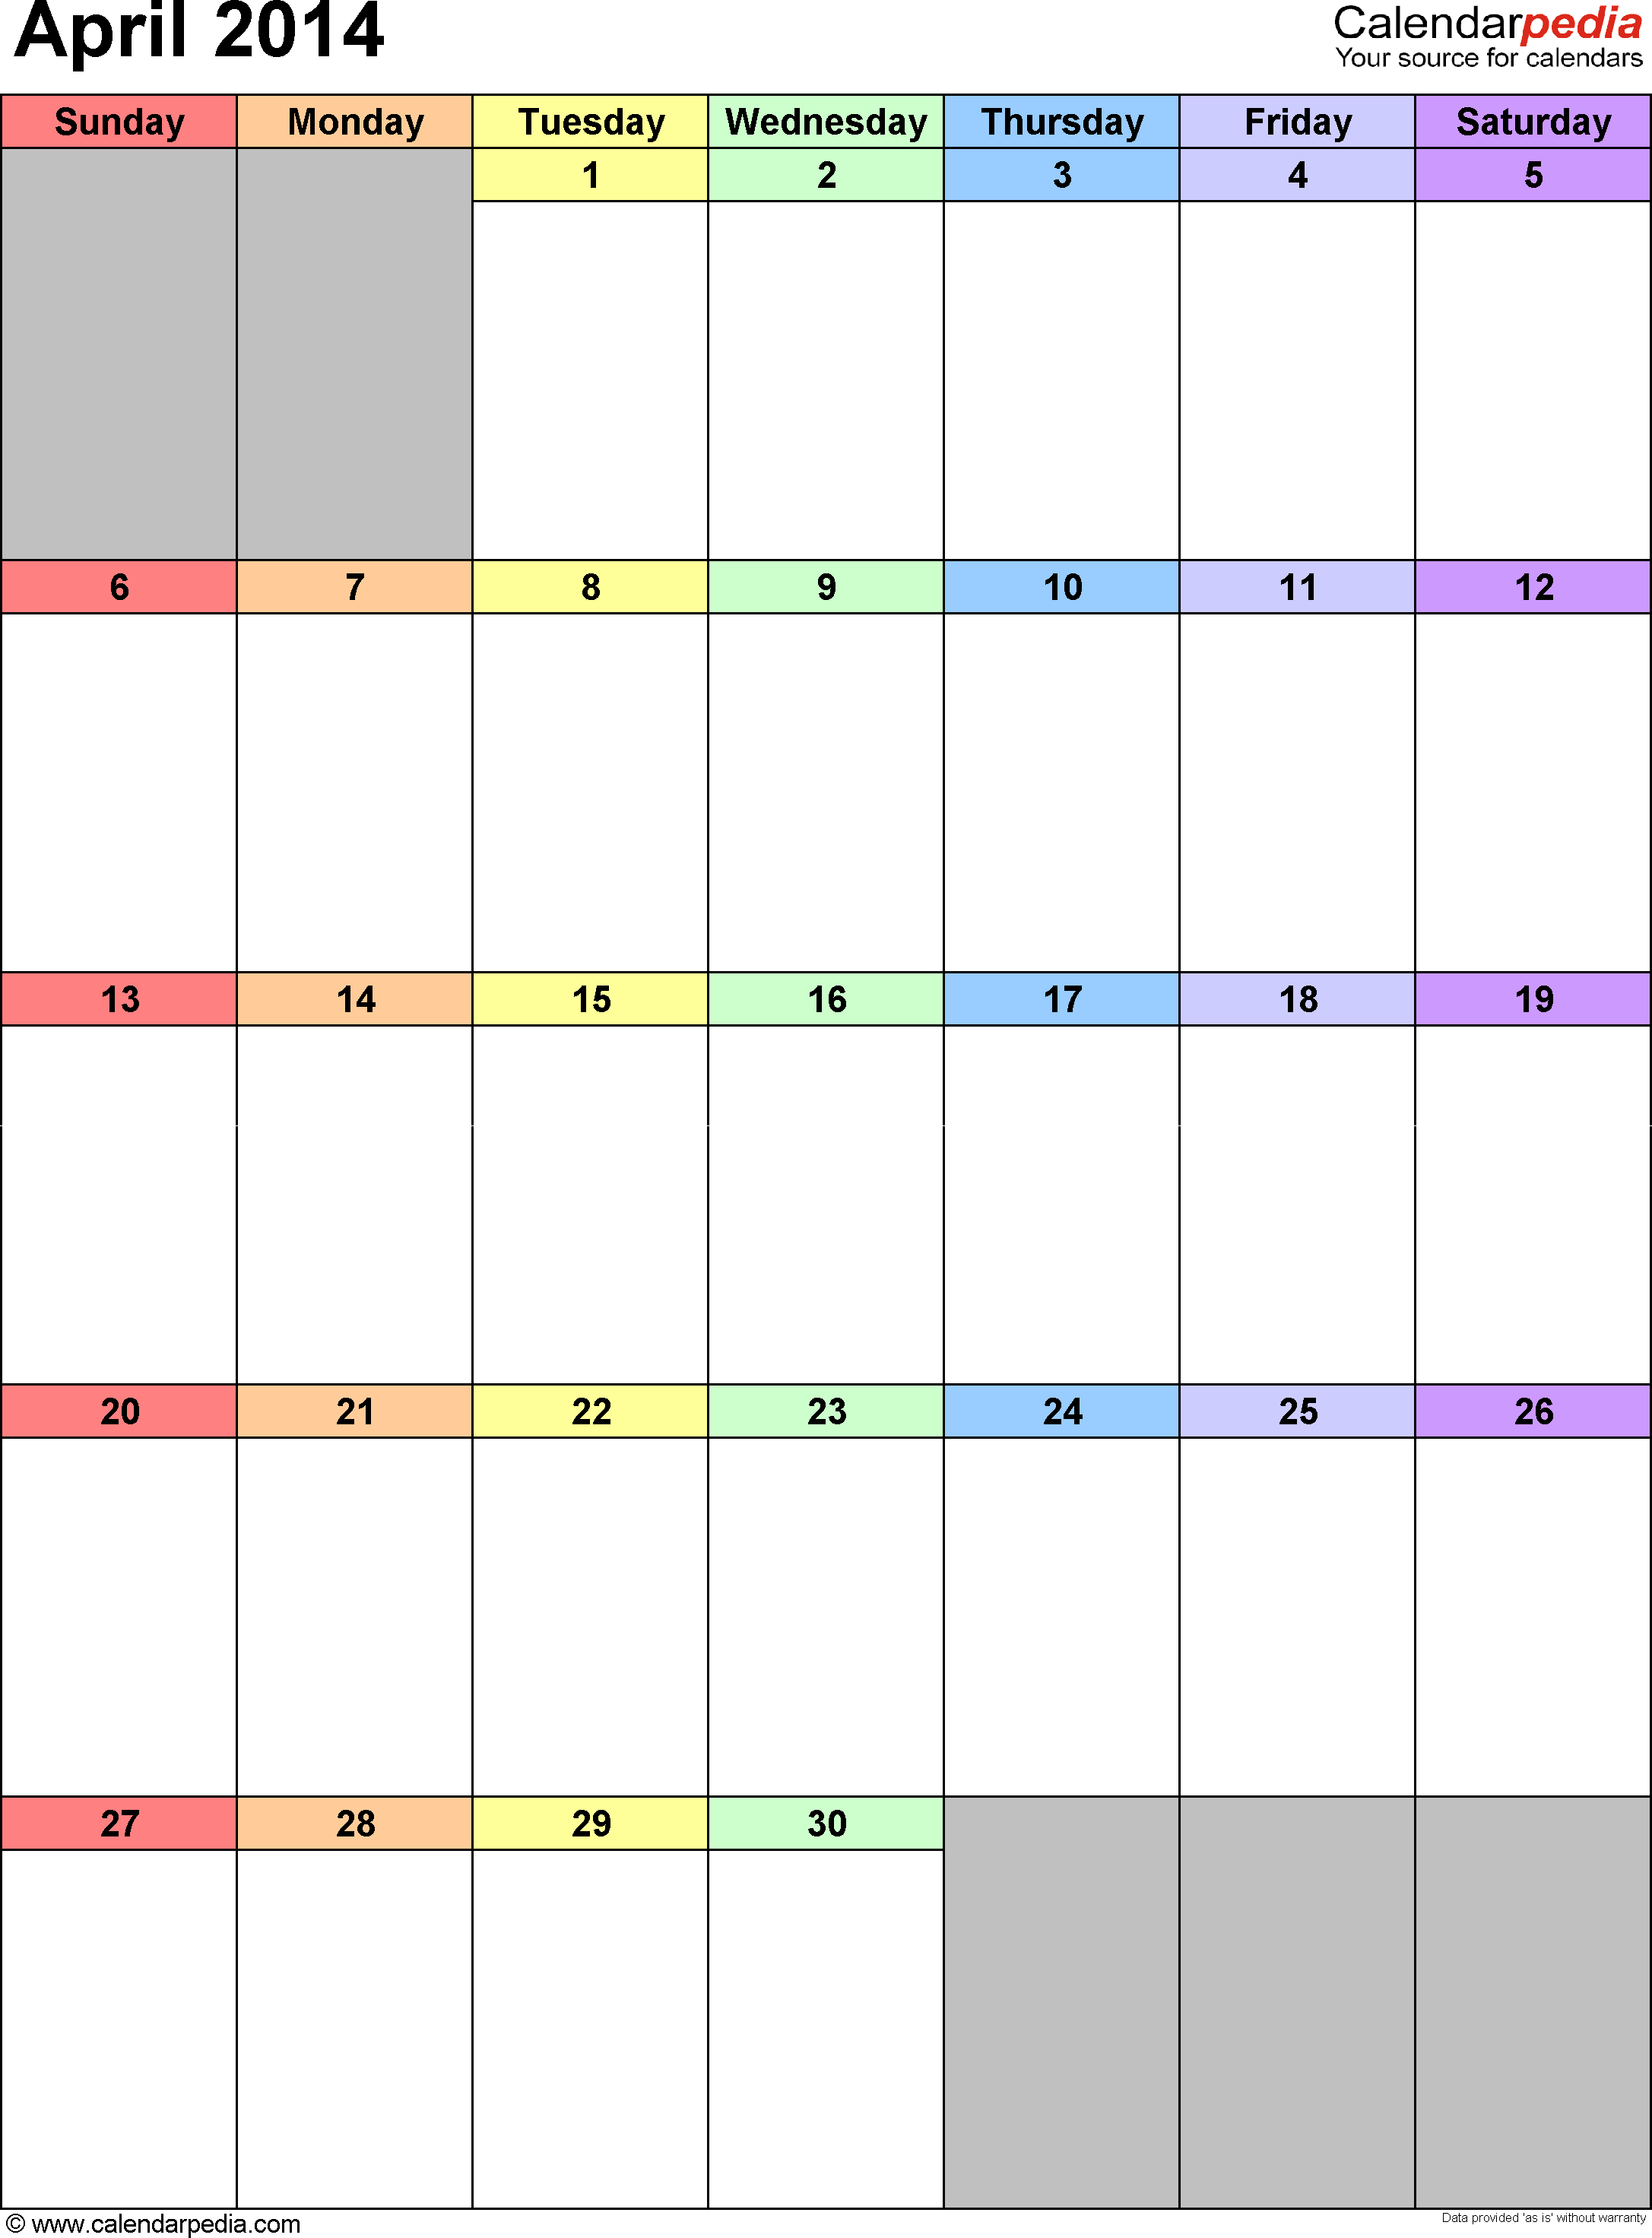 April 2014 calendar as printable Word, Excel & PDF templates